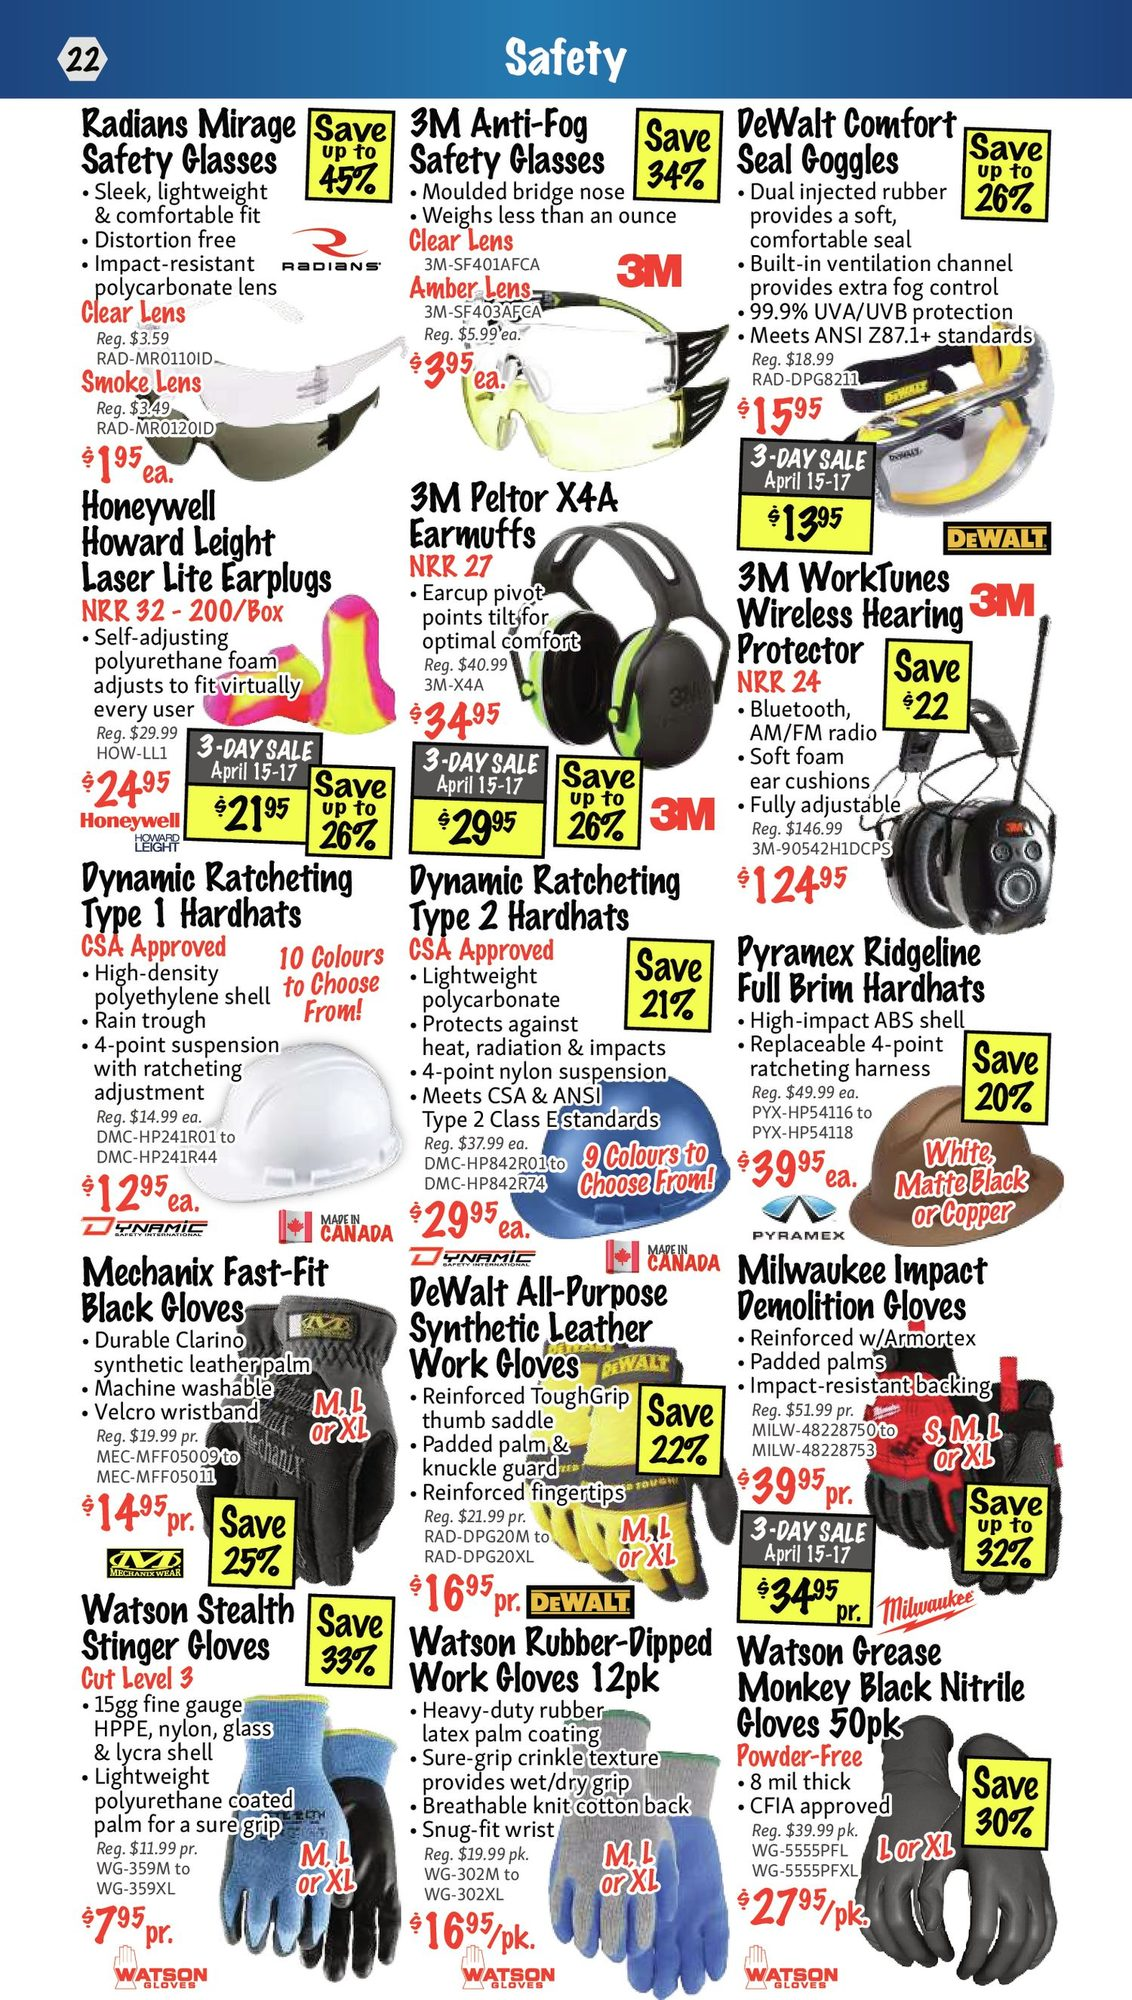 KMS Tools - Hand Tools, Air Tools & Compressor Sale - Page 22